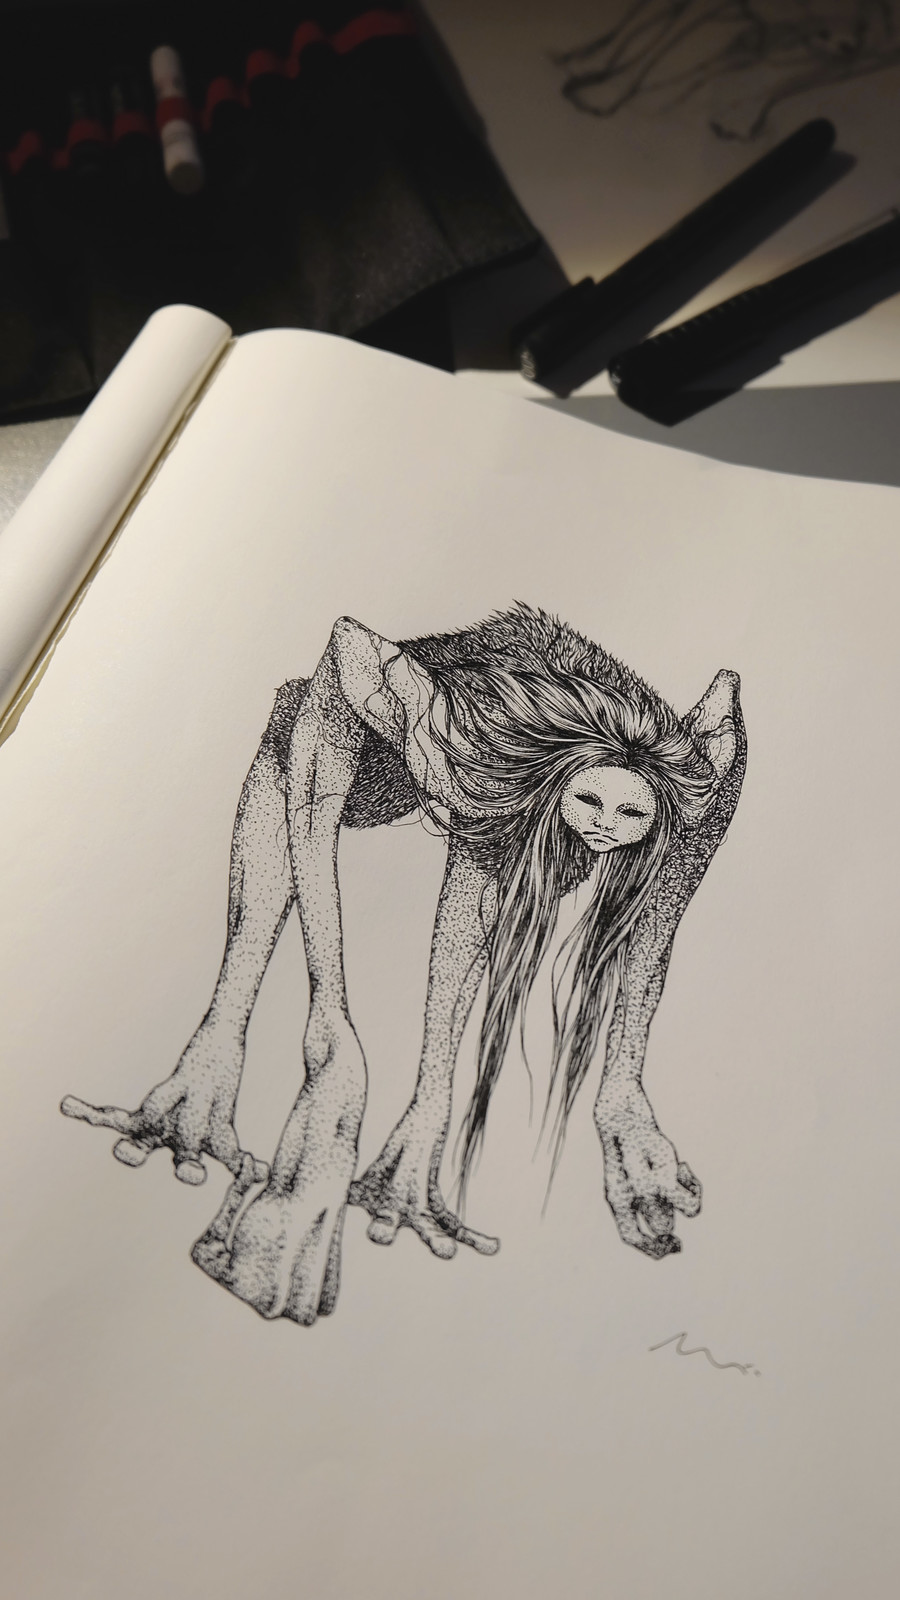 first illustration - ink drawing